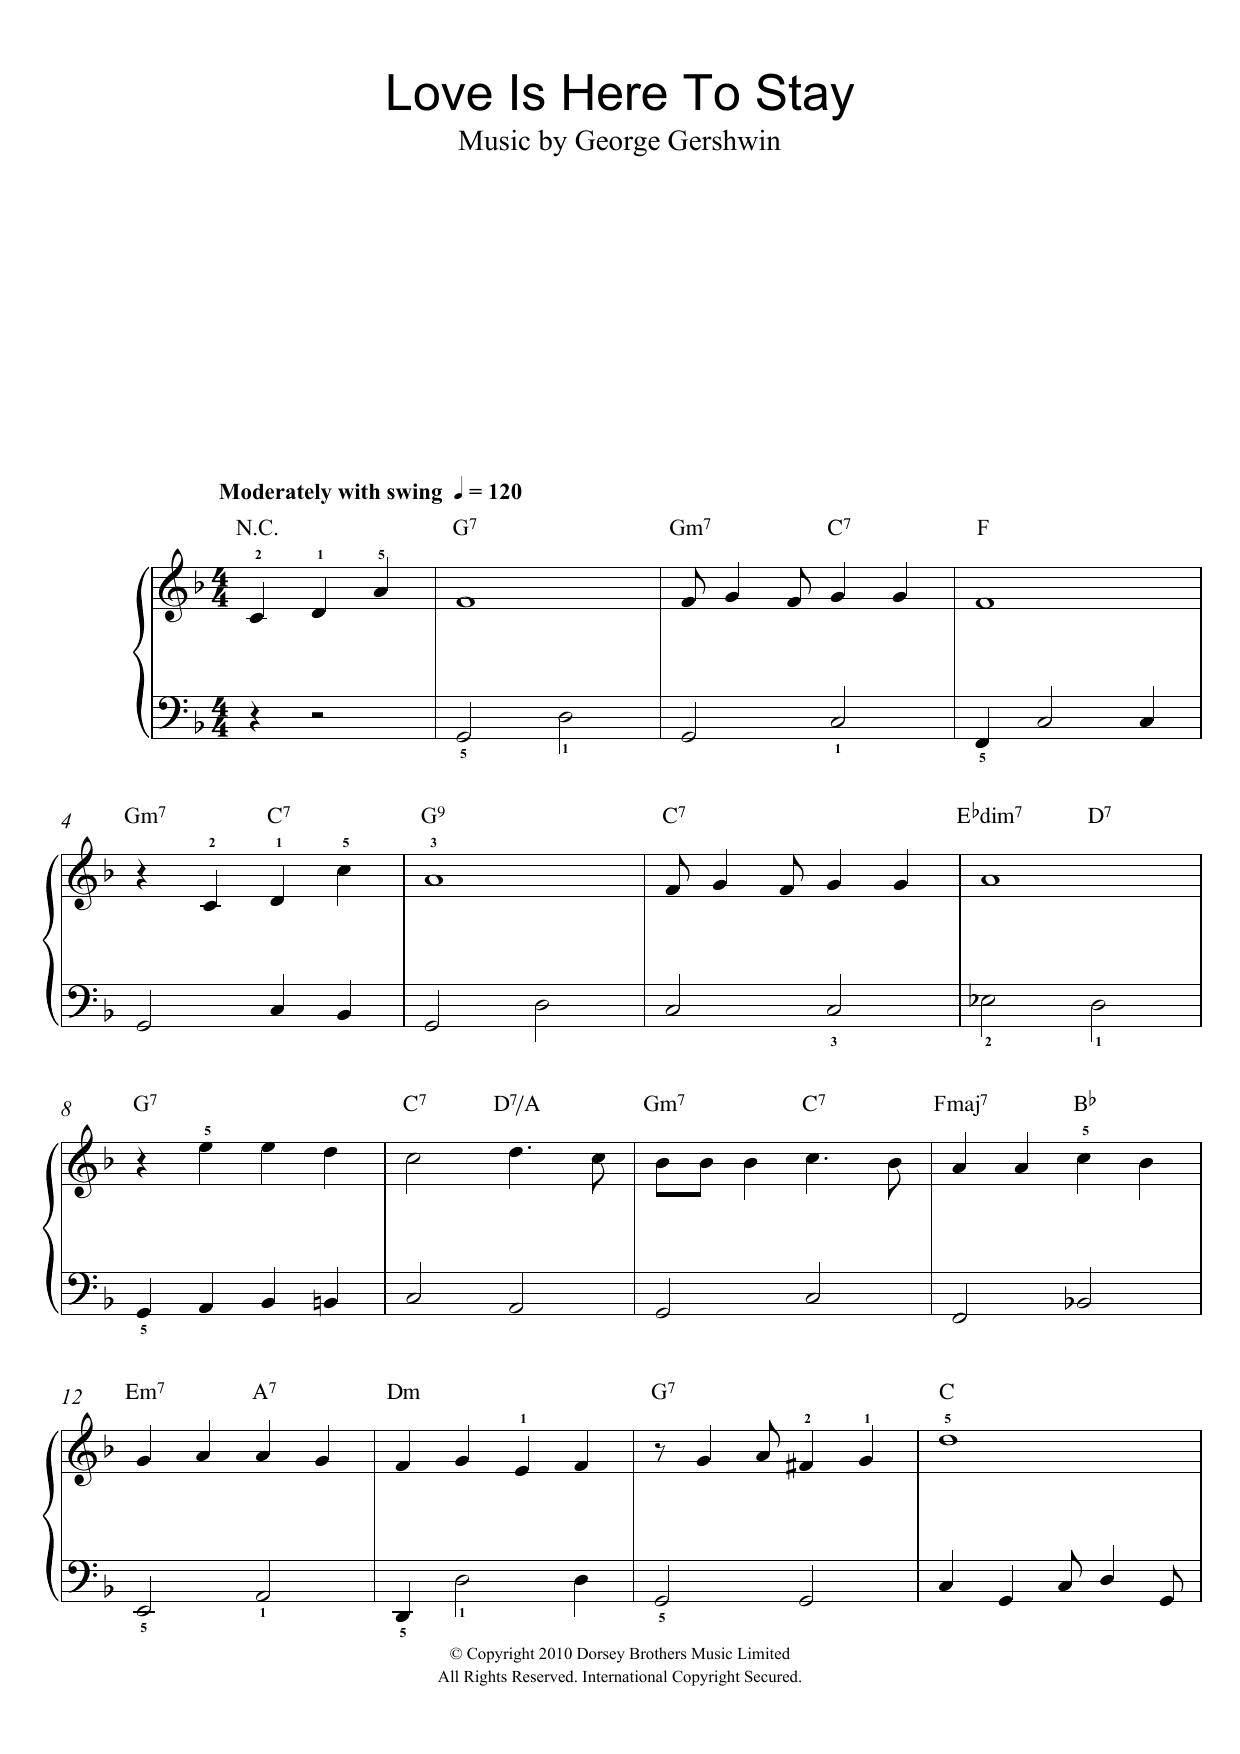 Love Is Here To Stay sheet music for piano solo (chords) by George Gershwin